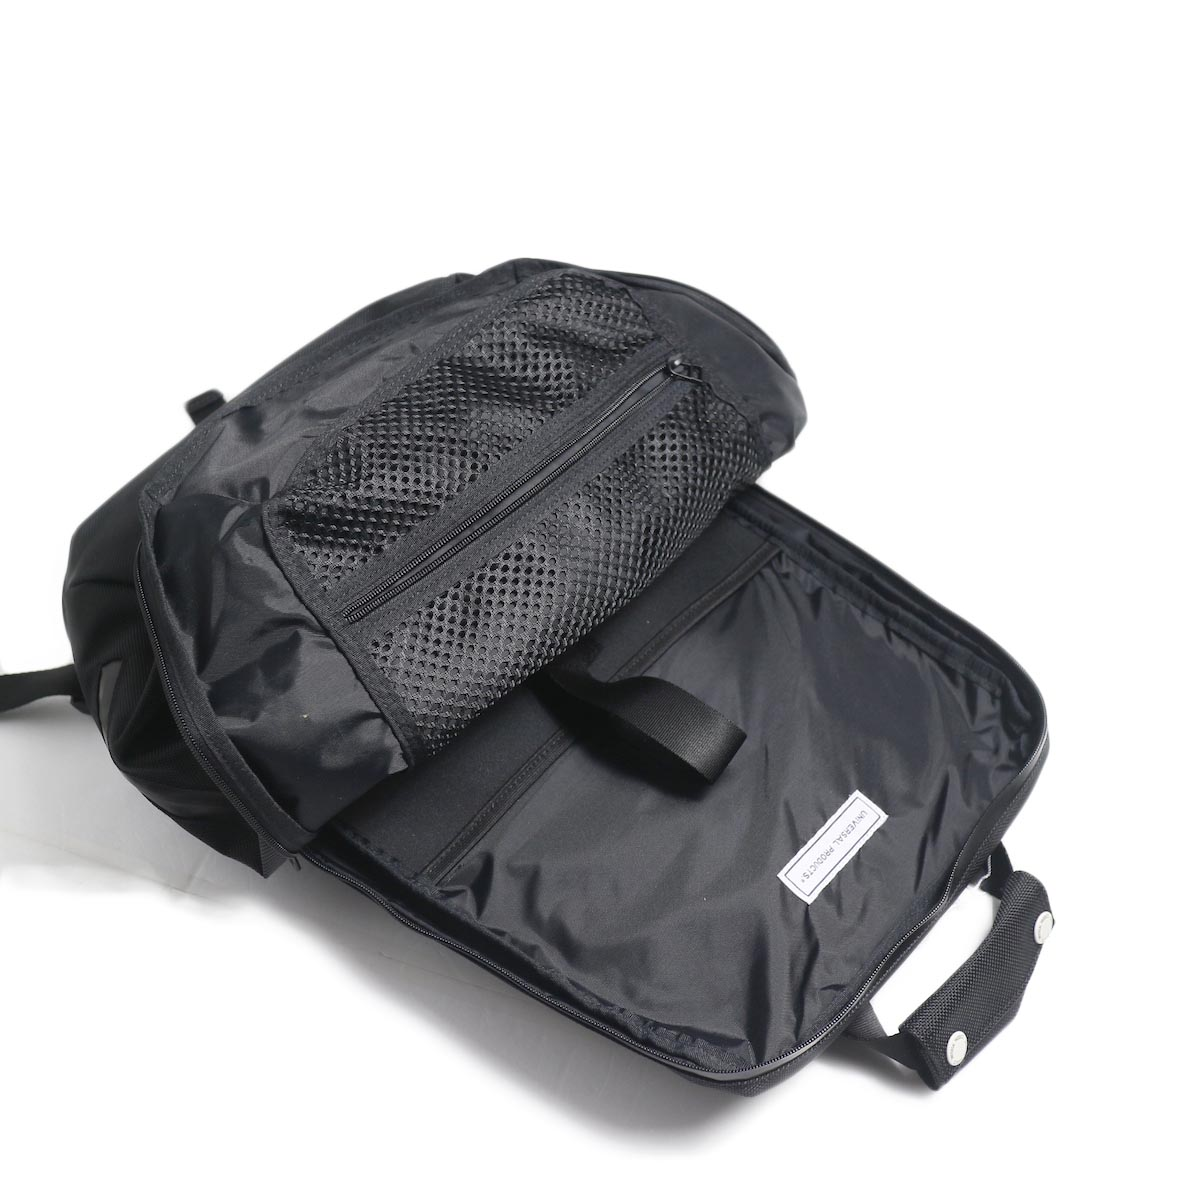 UNIVERSAL PRODUCTS / New Utility Bag -Black 開